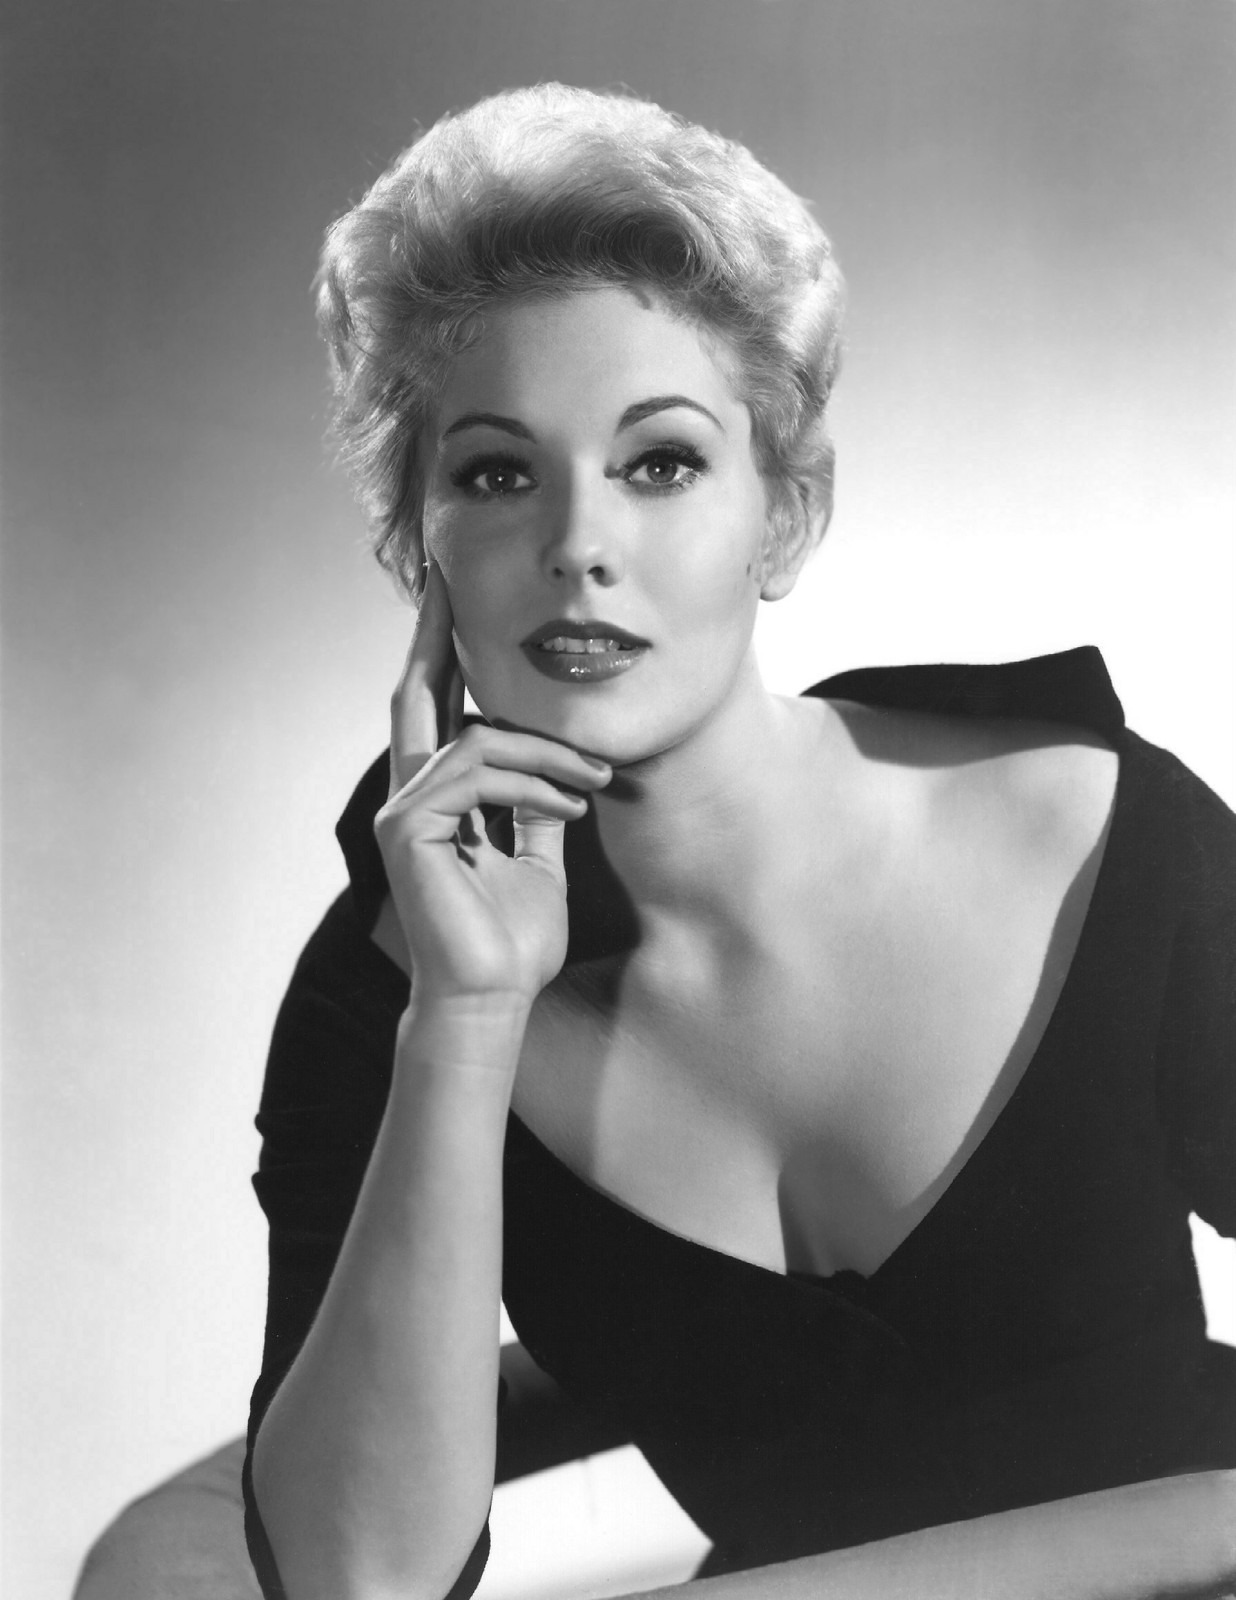 A black and white image of young Kim Novak. She looks really hot in the figure-hugging dress which reveals ample amount of her cleavage.